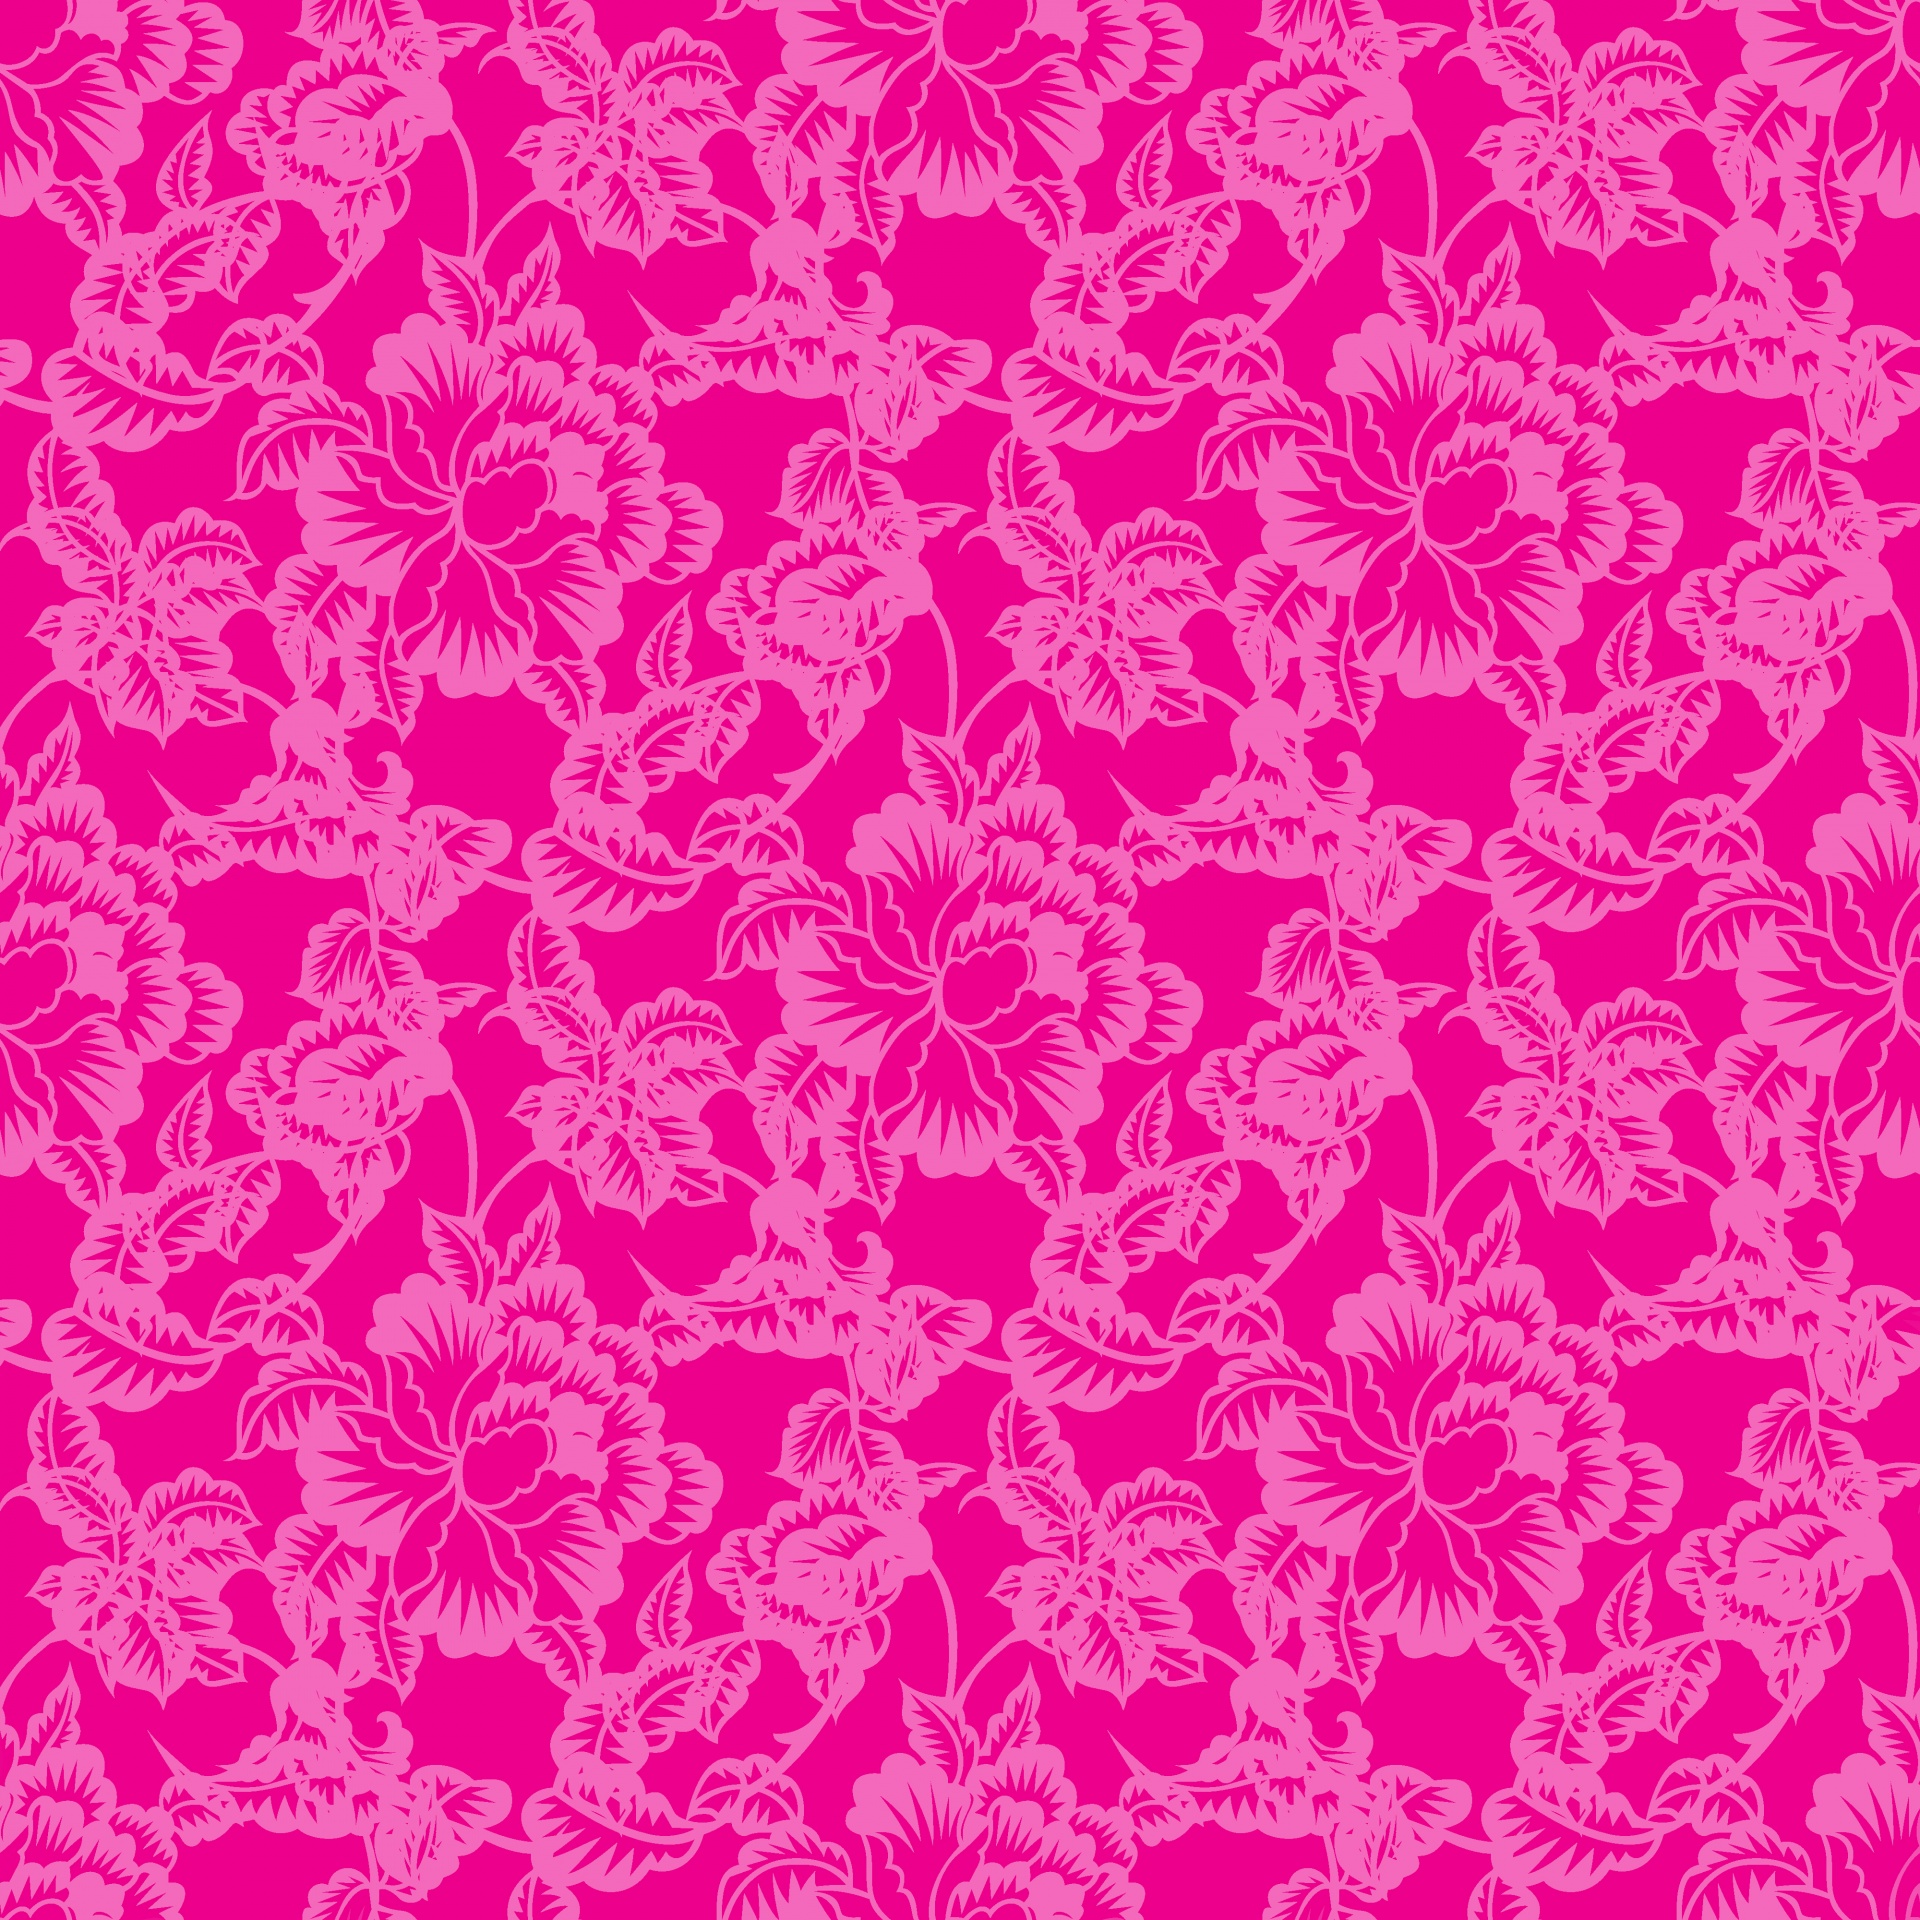 Floral Background Retro Vintage Pink Free Image From Needpix Com